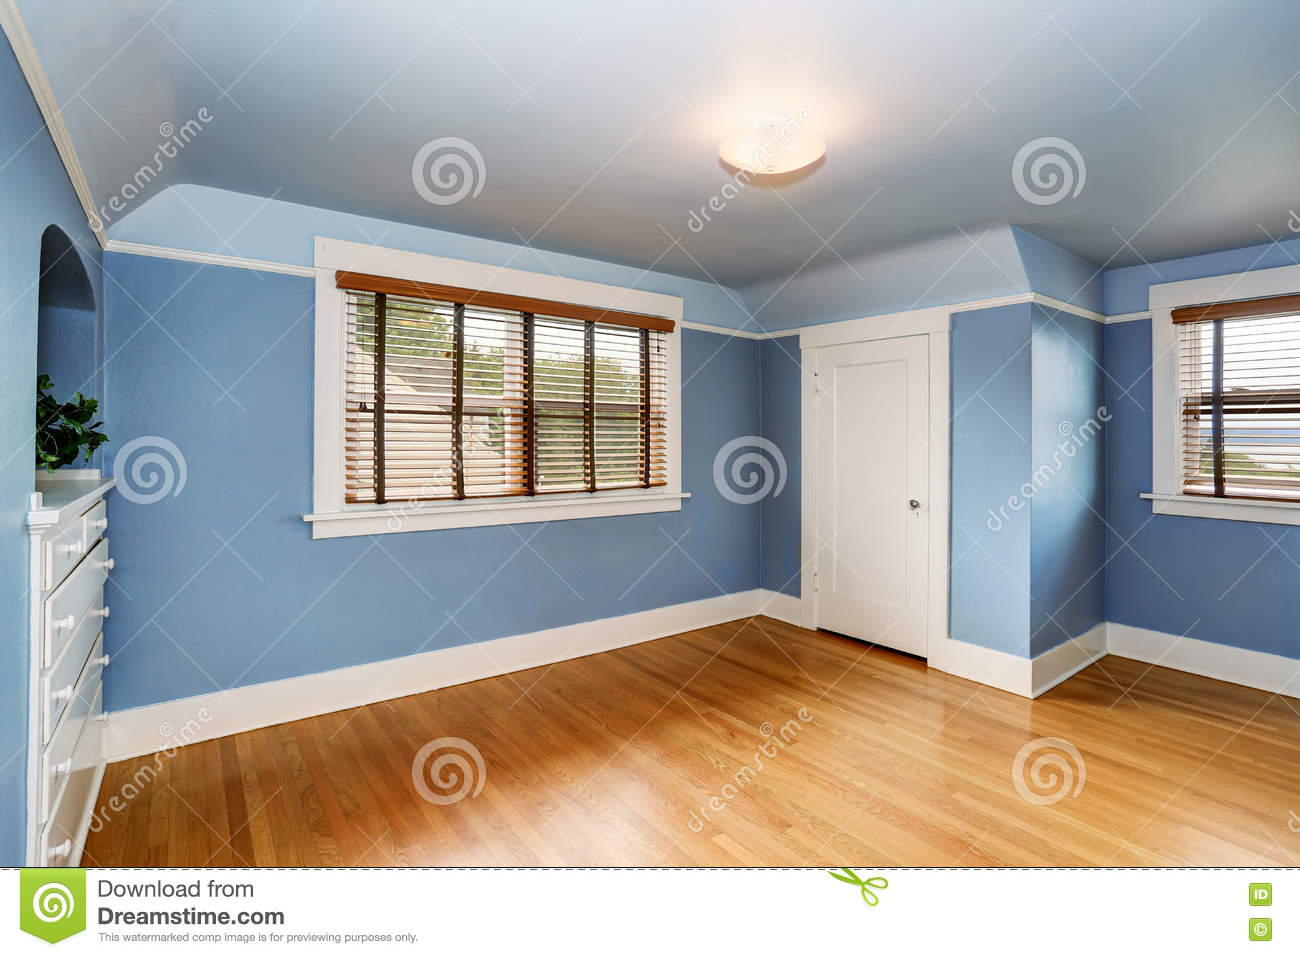 Empty Living Room Interior With Blue Walls And Hardwood Floor